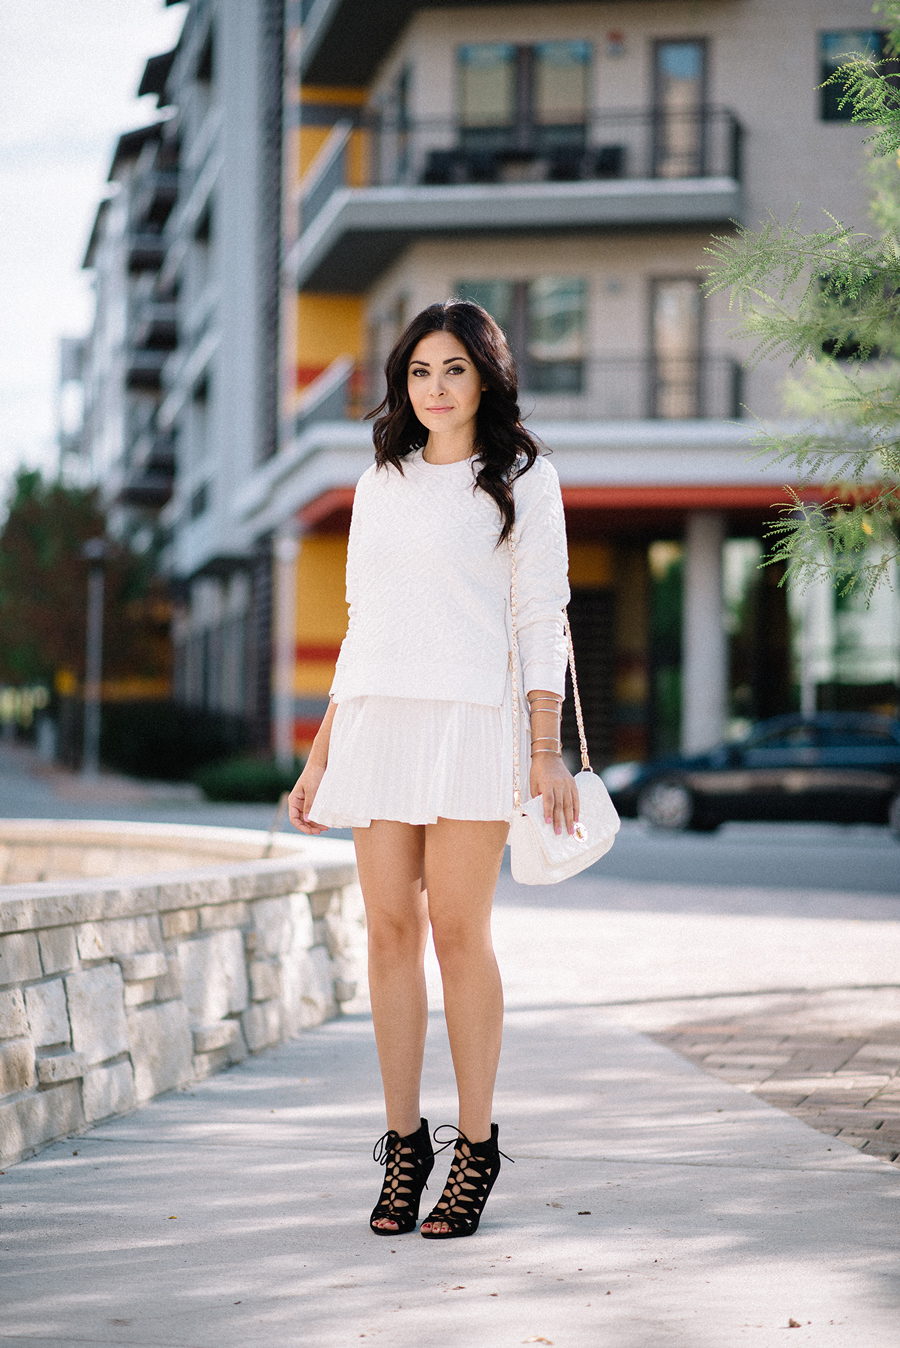 FIXIN-TO-THRILL-CARLOS-BARRON-PHOTOGRAPHY-FALL-NUDE-OCTOBER-CHIC-ATX-AUSTIN-STYLE-BLOG-BLACK-WHITE-LACE-SANDALS-TRENDS-FW15-TRENDY-CHIC-GLAM-FASHION-TEXAS-6